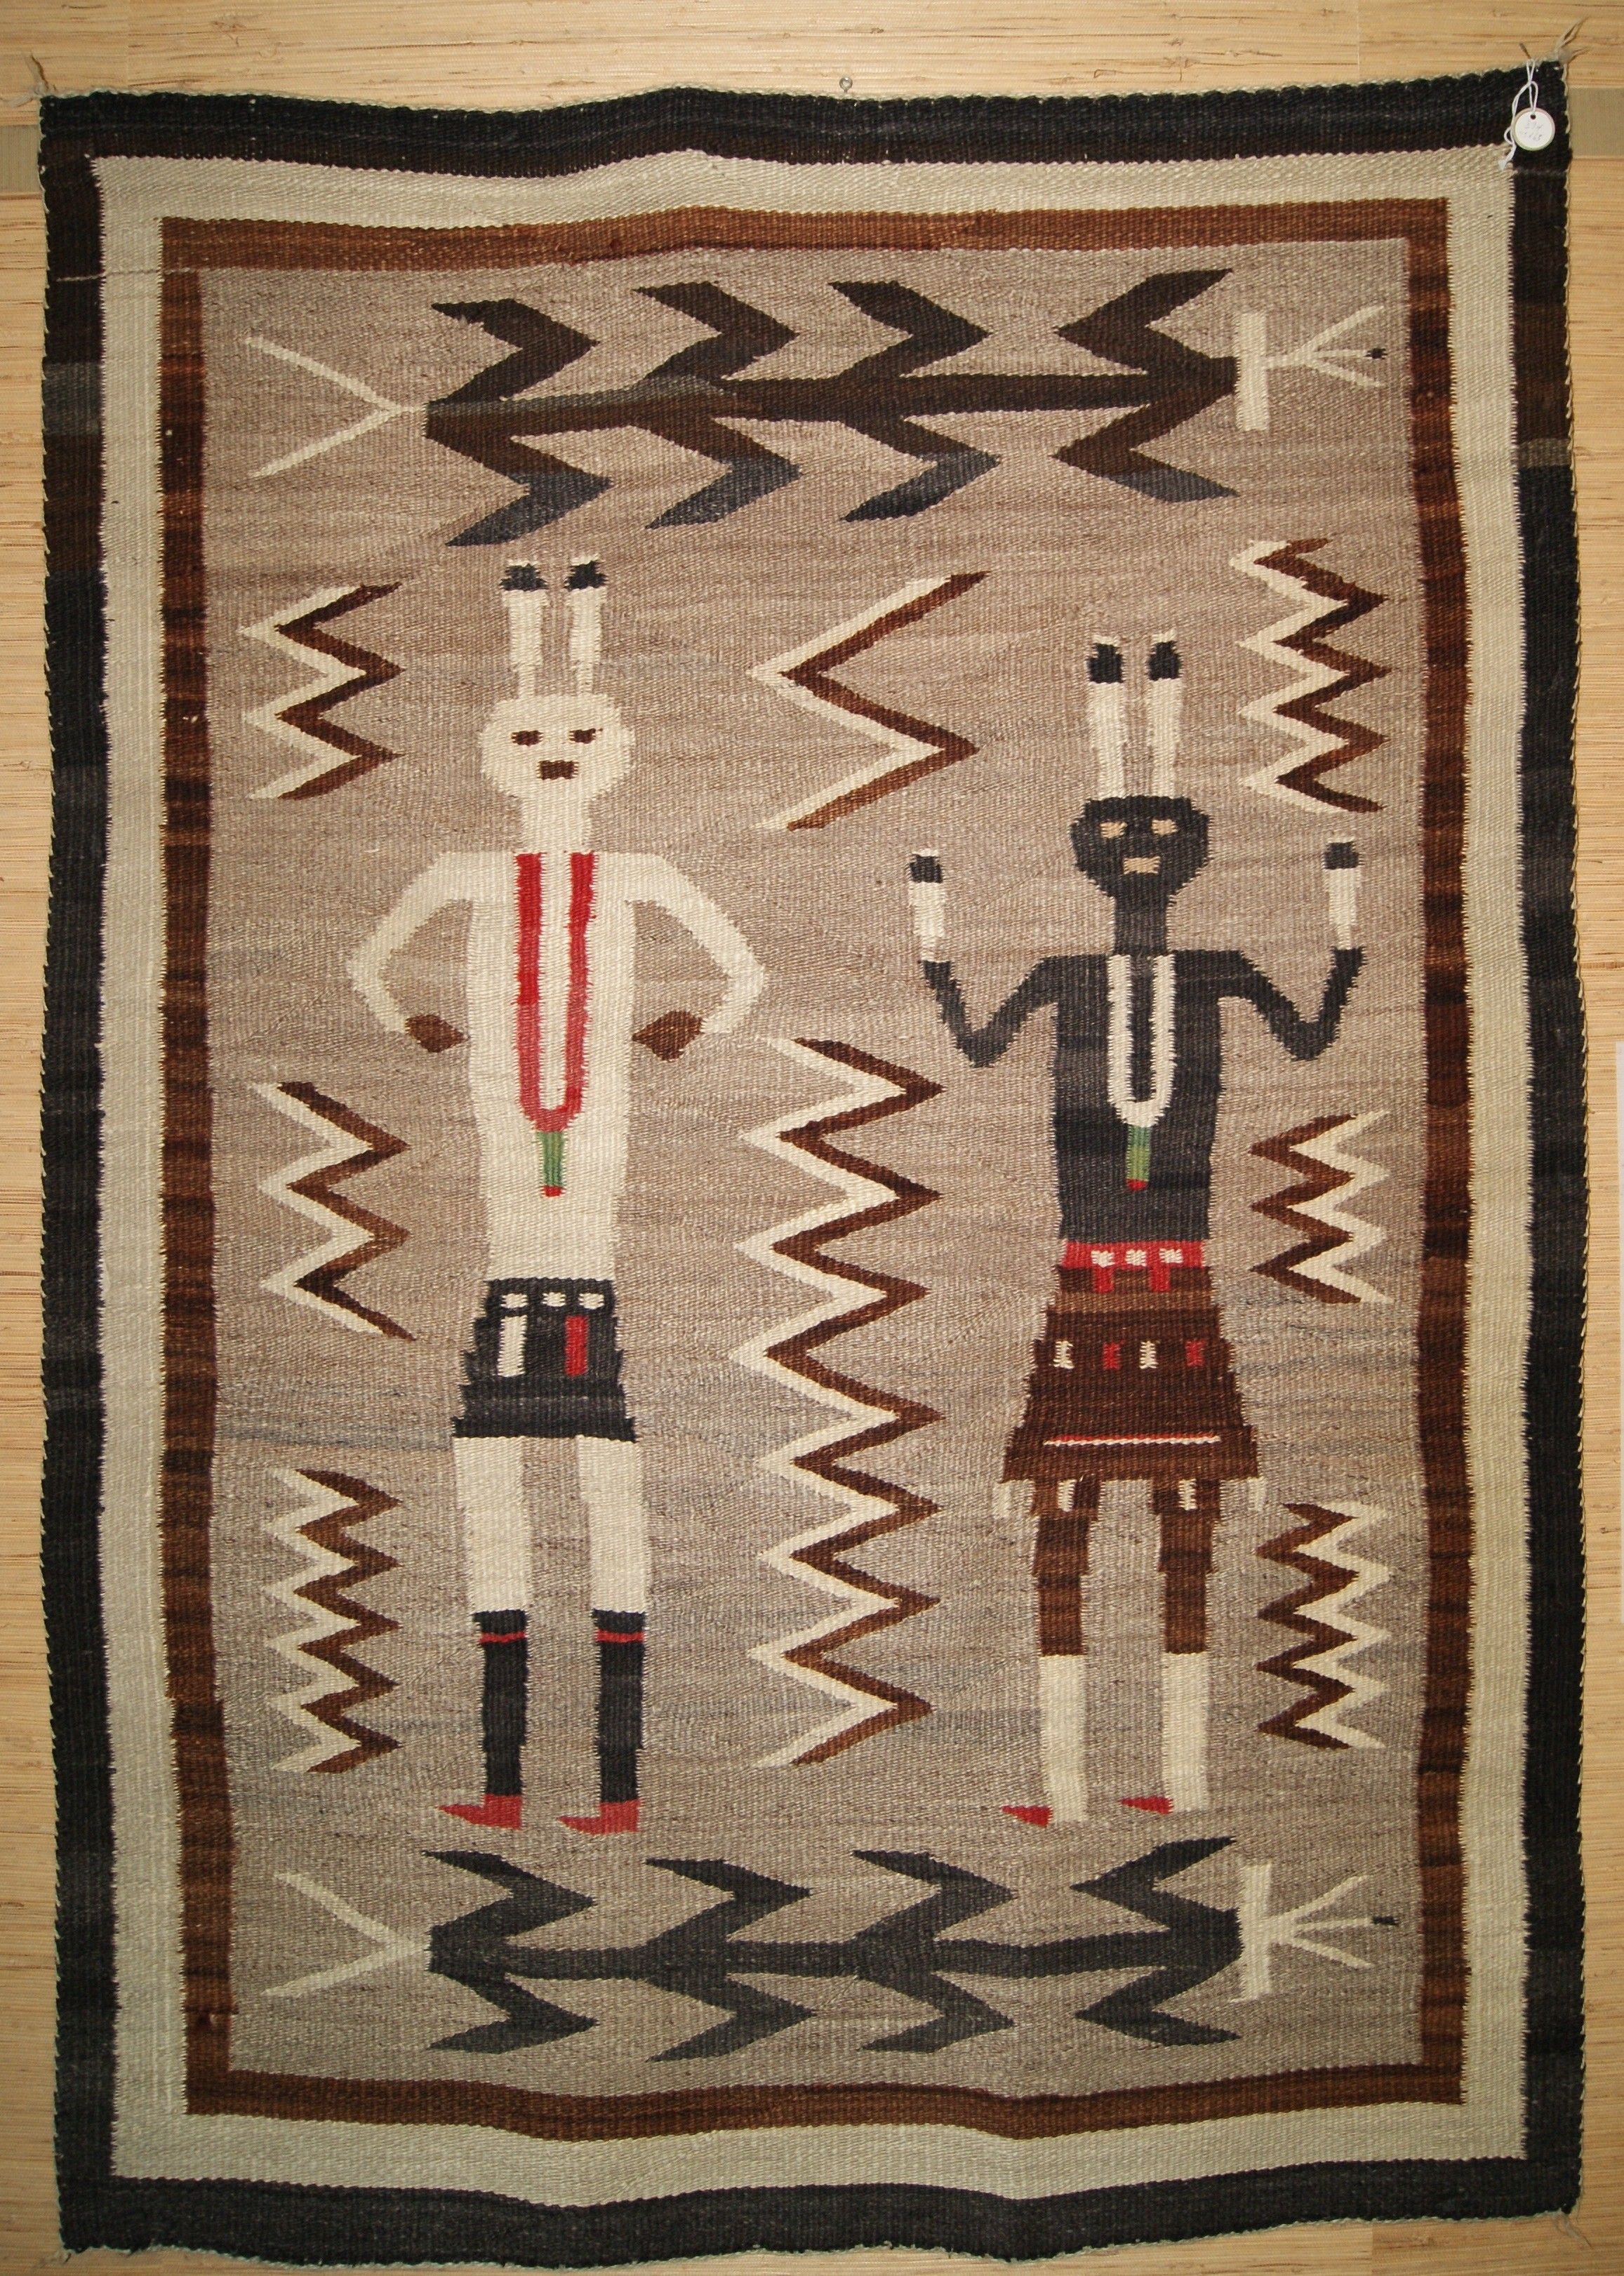 394-yeibichei-pictorial-navajo-rug-001-large (2314×3243